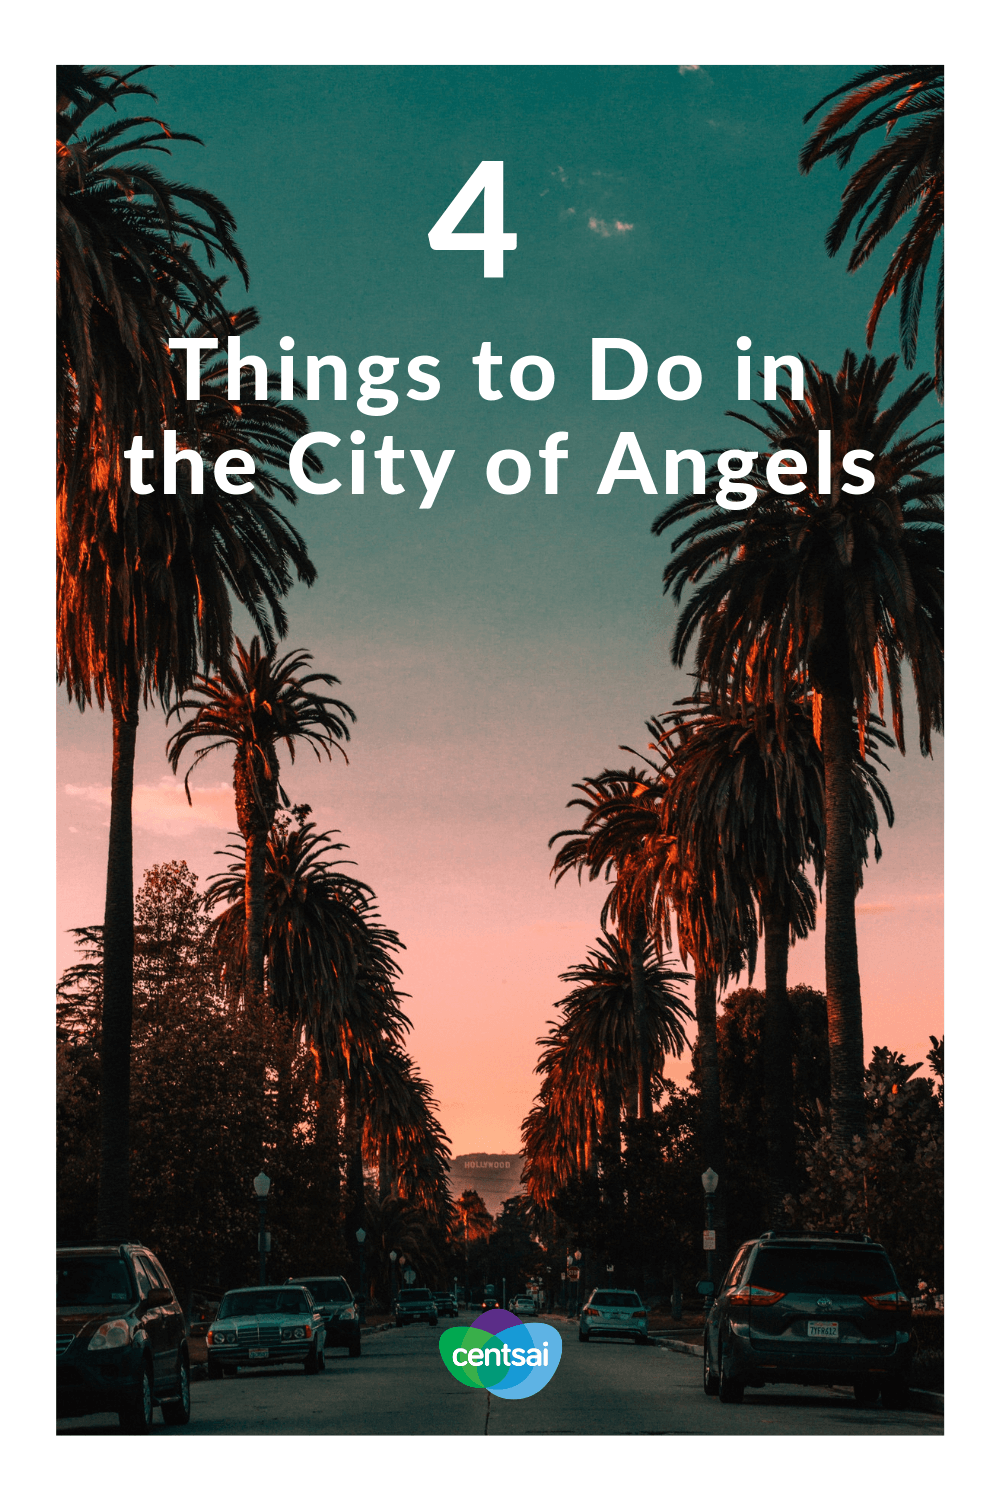 4 Things to Do in the City of Angels. There are tons of things to do in L.A. ... if you're willing to spend big bucks. Learn whether visiting the City of Angels is worth the money. #travel #vacationideas #traveltips